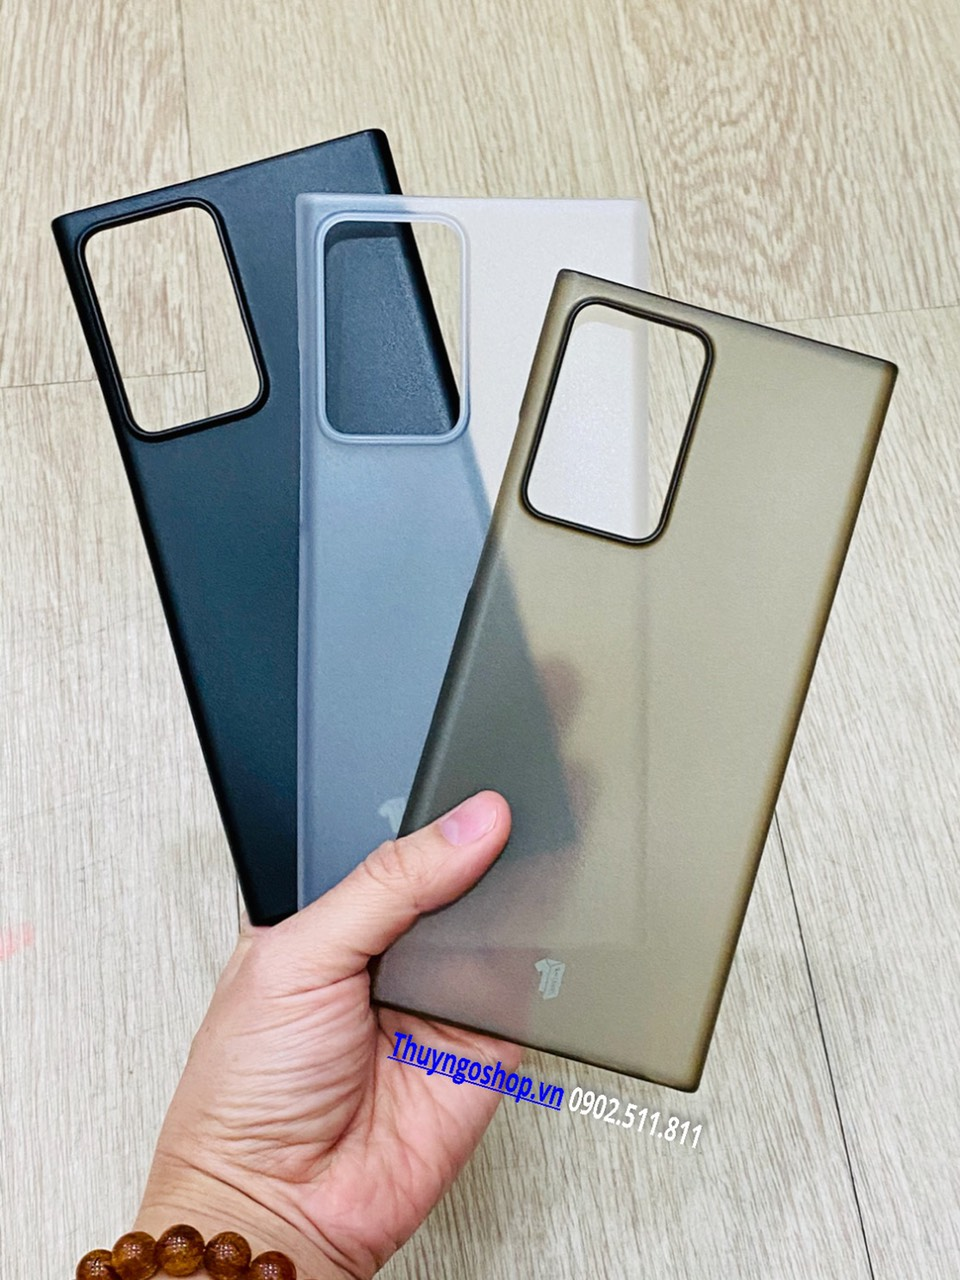 op-lung-nham-sieu-mong-0-18mm-x-level-note20-note20-ultra-note10-plus-note10